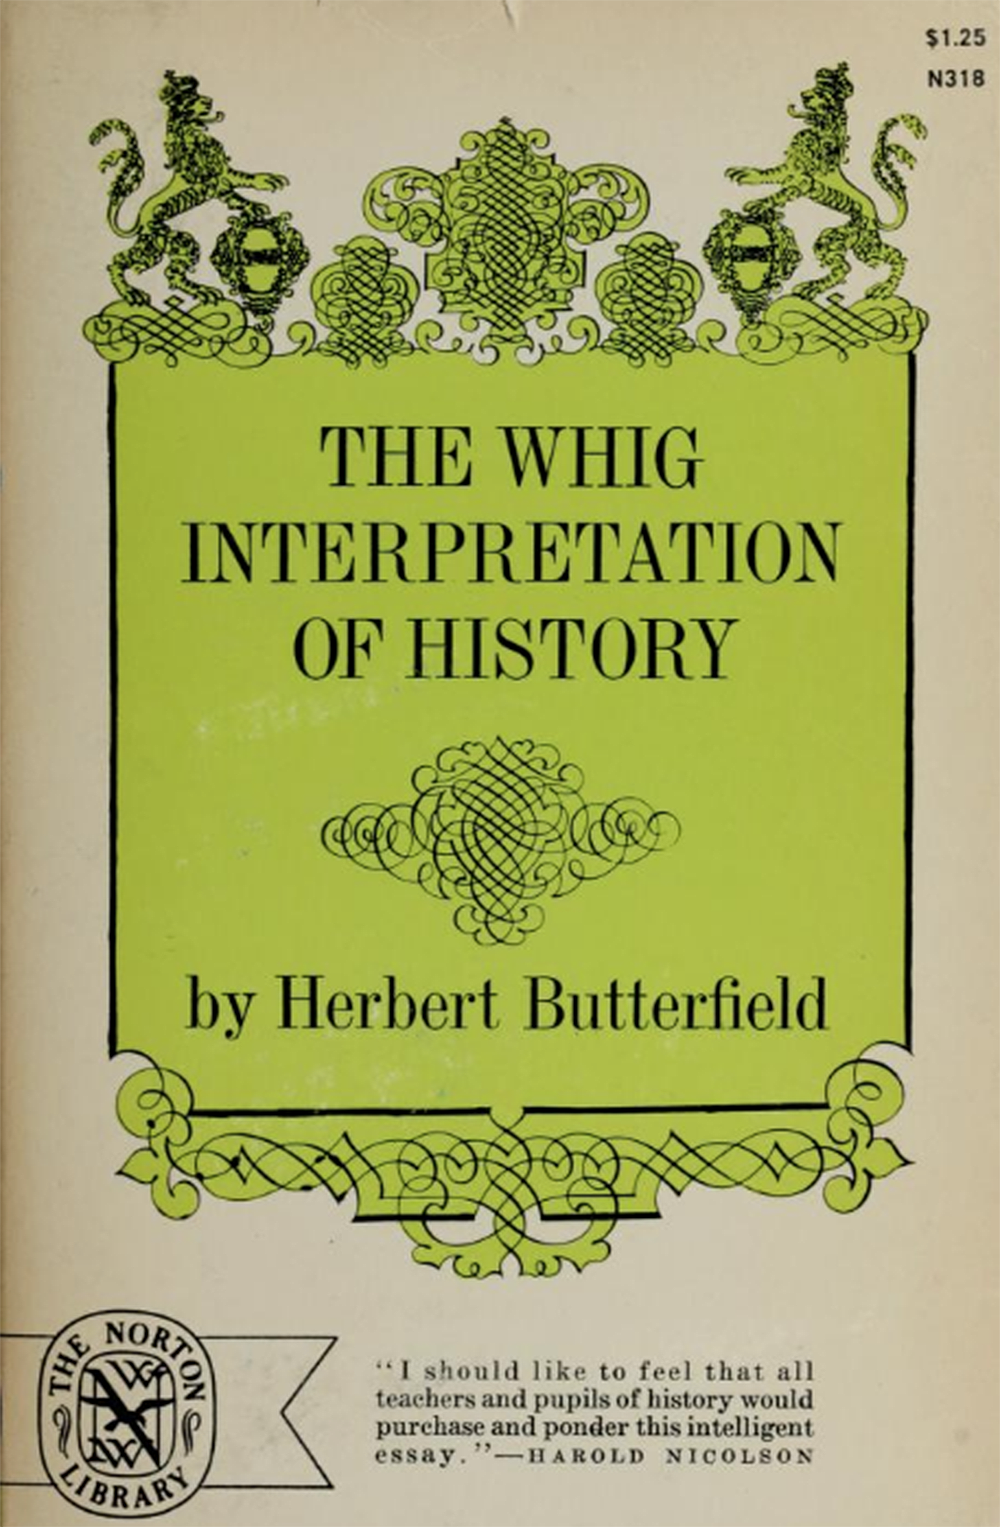 The Whig Interpretation of History, by Herbert Butterfield, 1965. Internet Archive, University of Alberta Libraries.